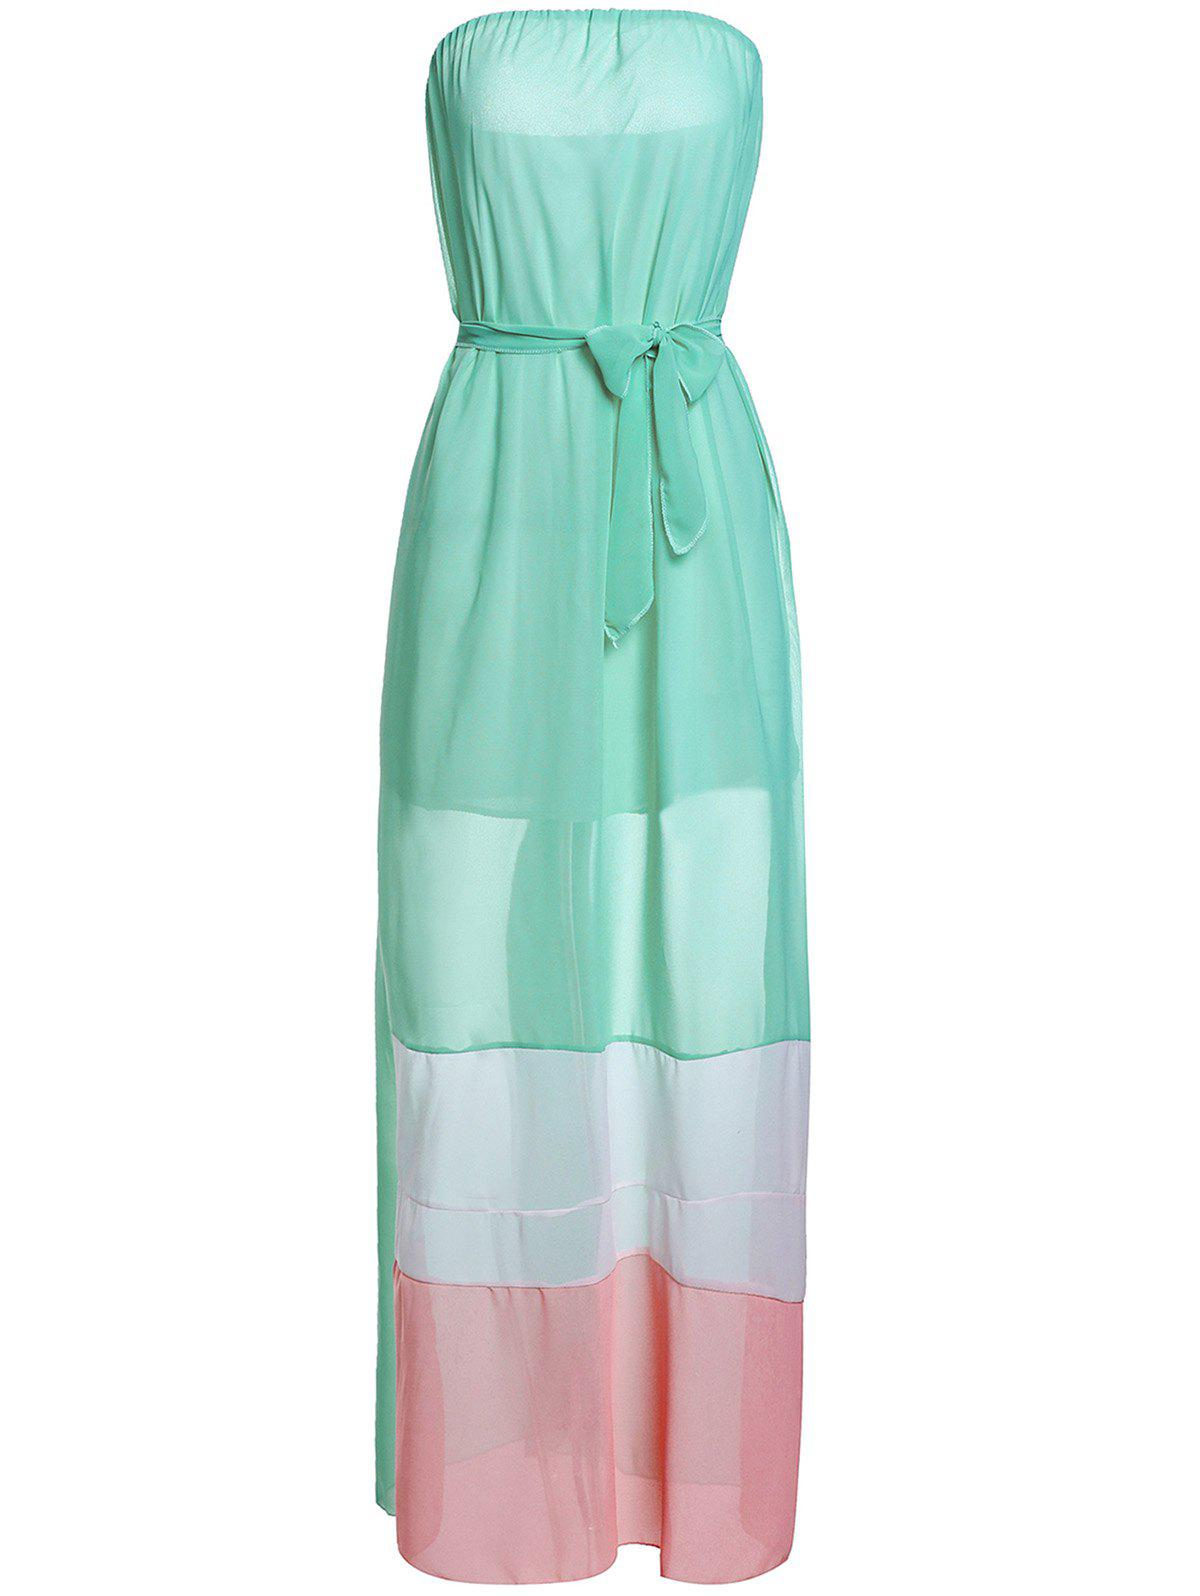 Fashionable Sleeveless Strapless Striped Color Block Chiffon Women's Maxi Dress - GREEN XL